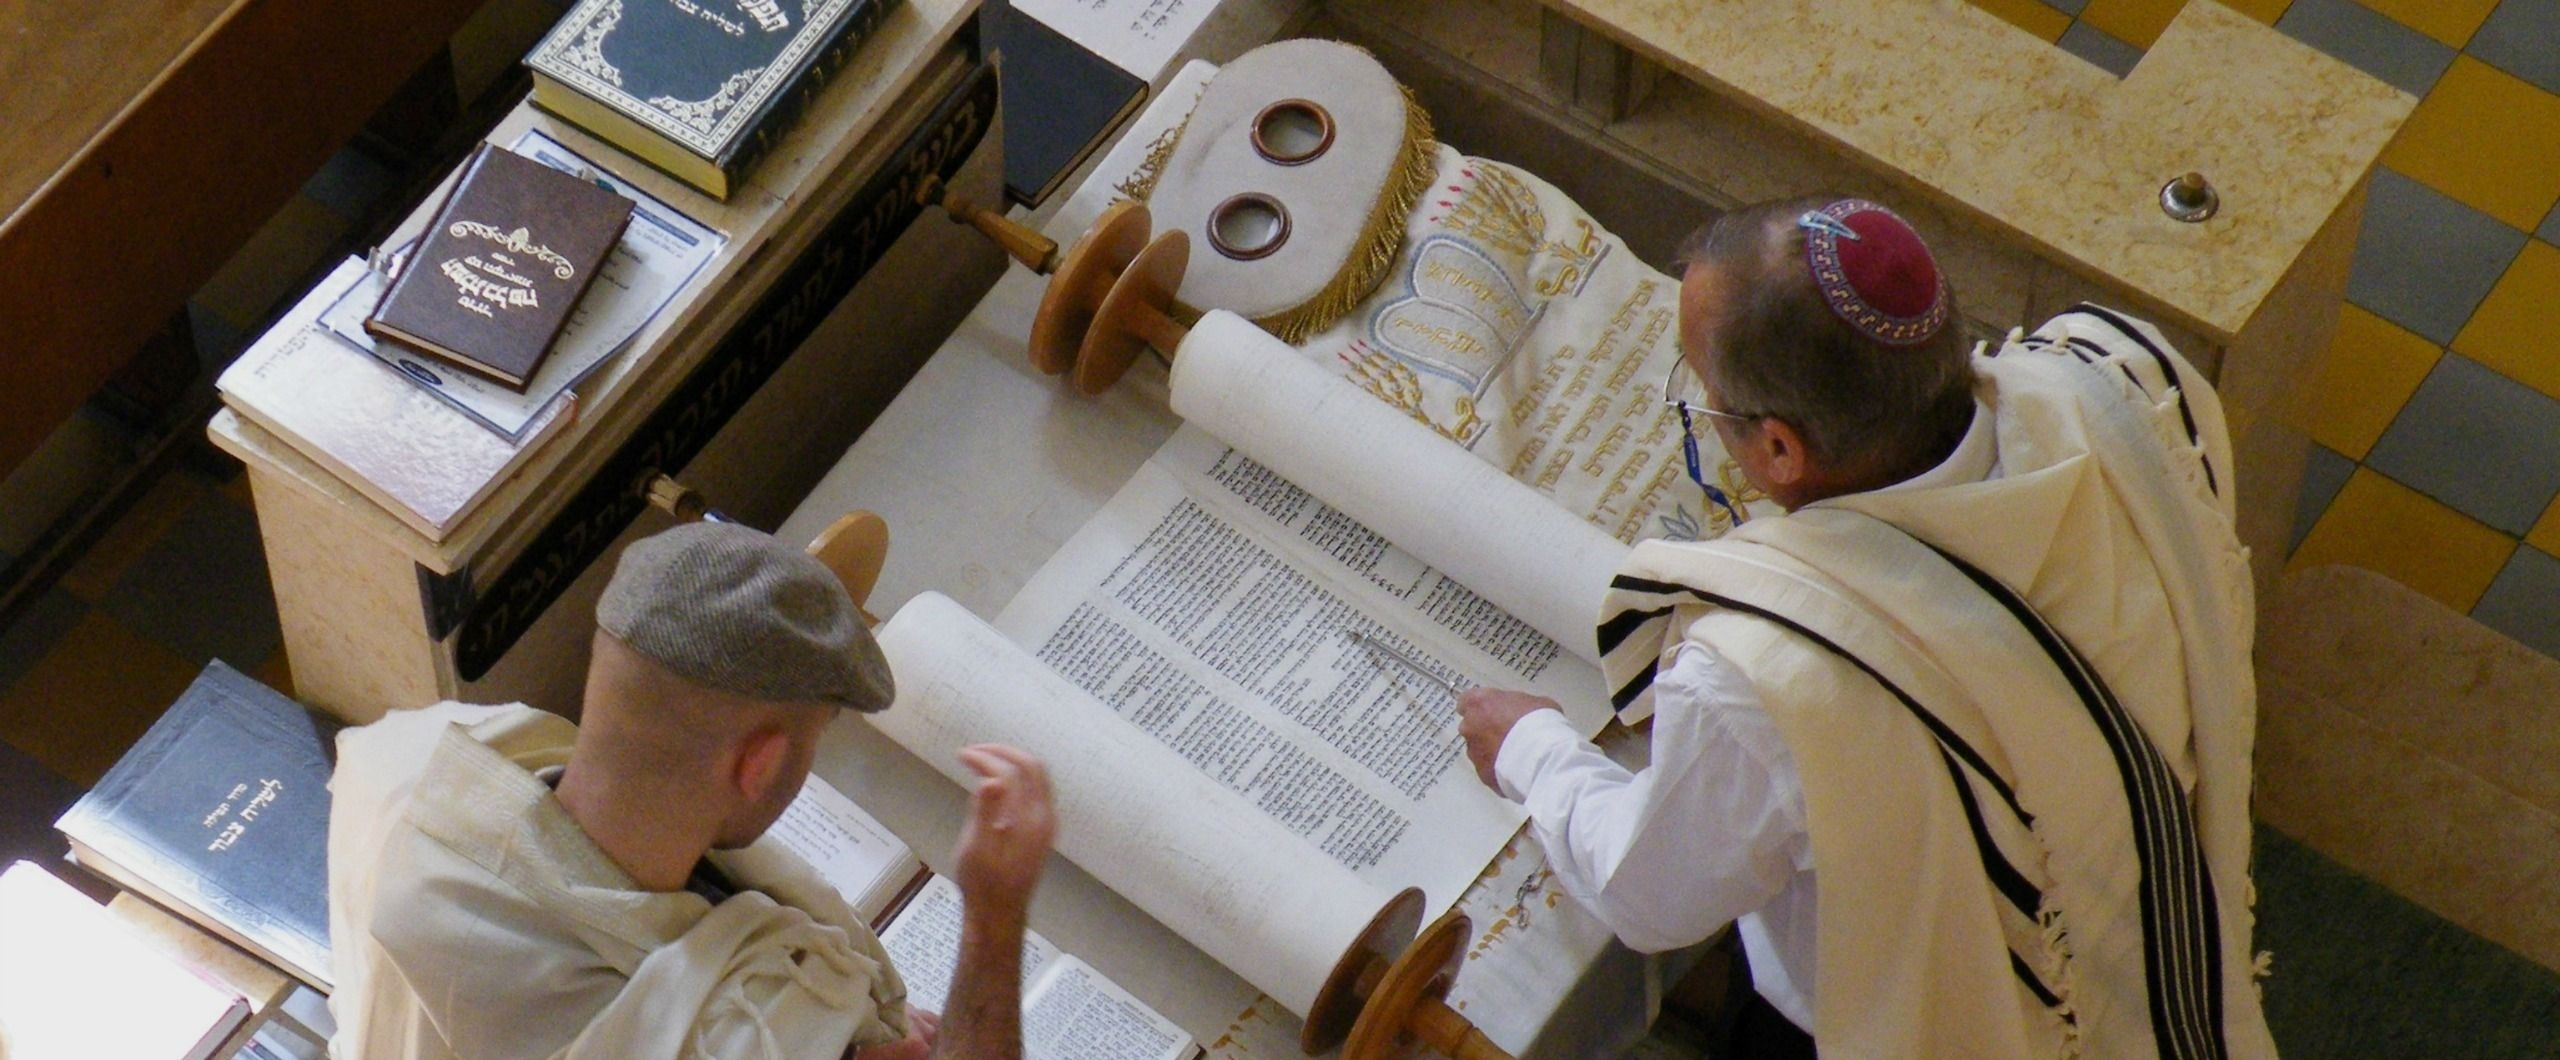 Come Read From The Torah! But First, What'S Your Preferred intended for What Is The Next Reading For Torah